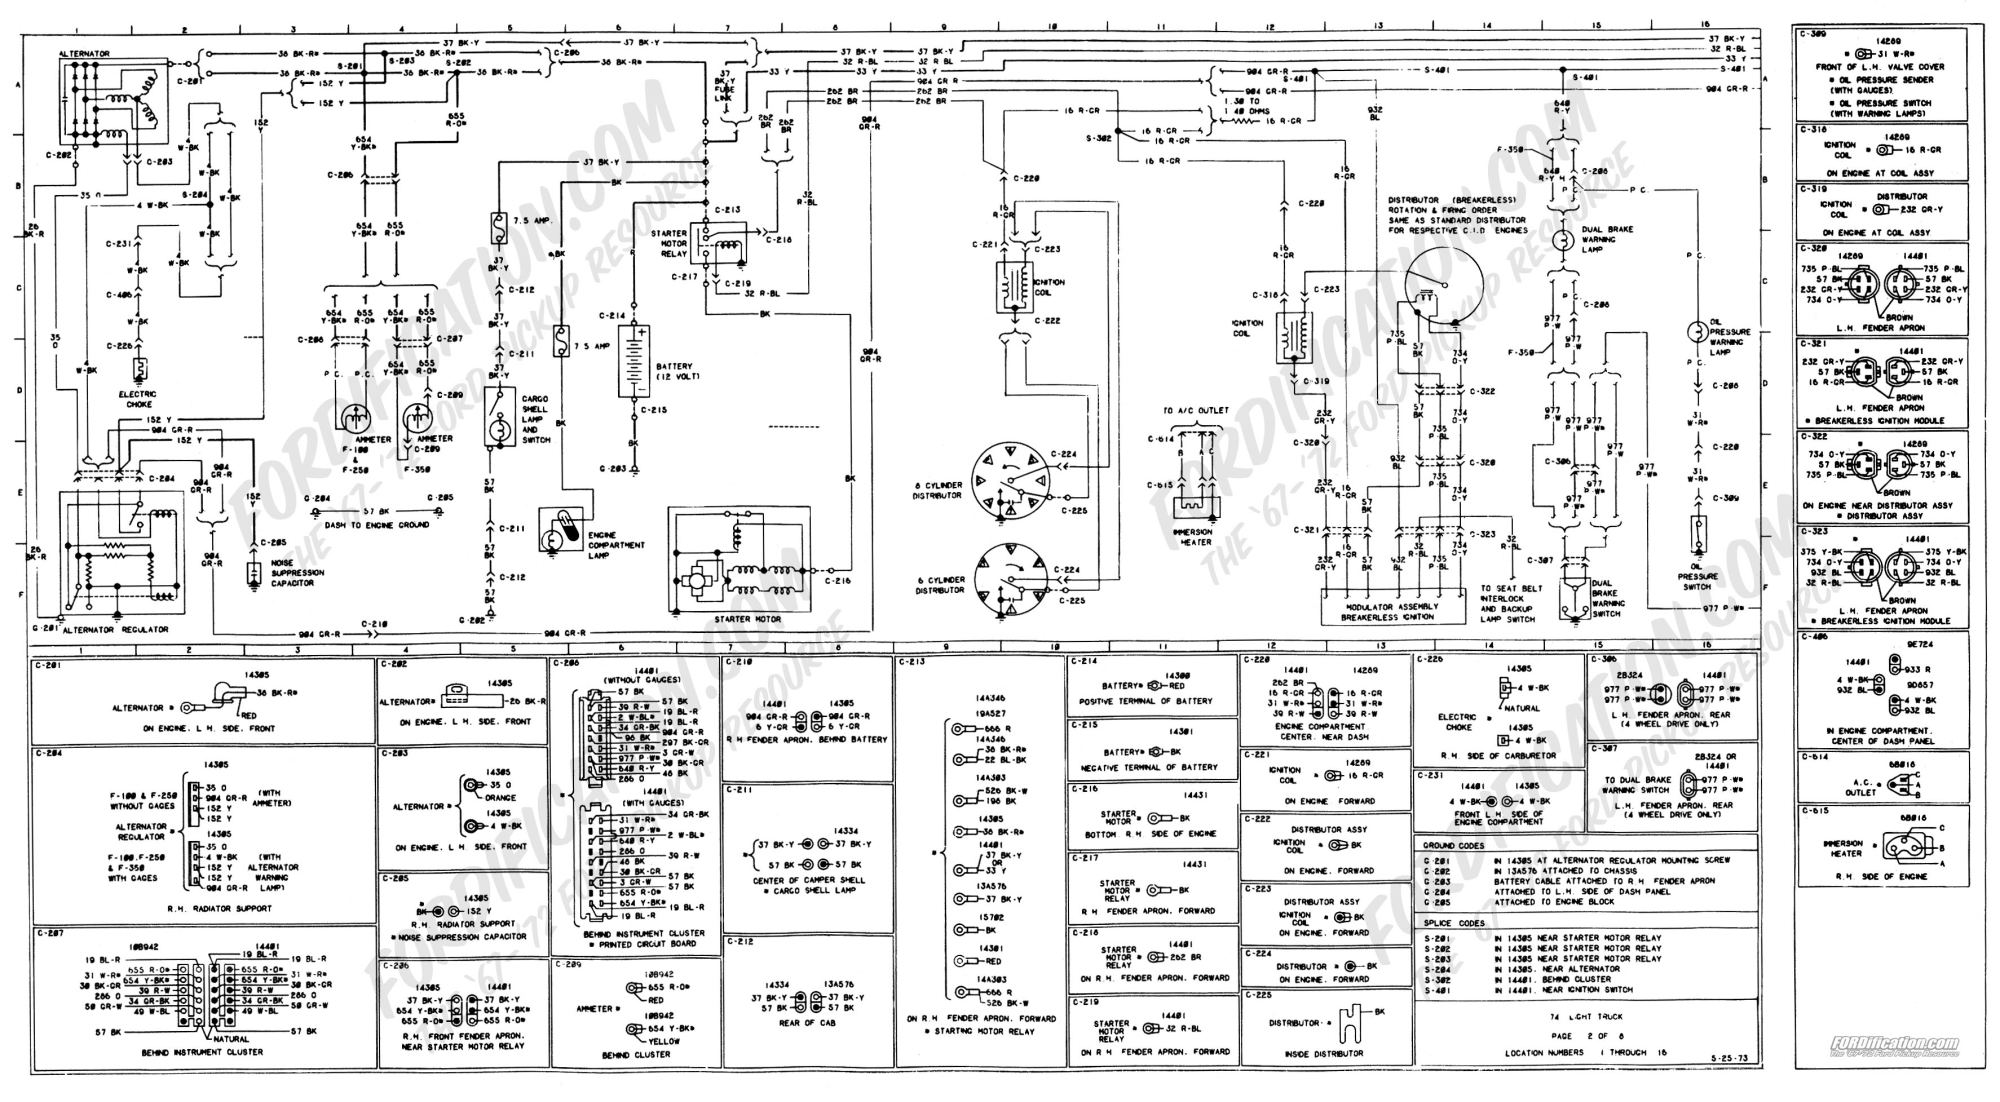 hight resolution of ford courier wiring diagrams wiring diagram ford courier odometer wiring 1976 ford courier wiring diagram schema